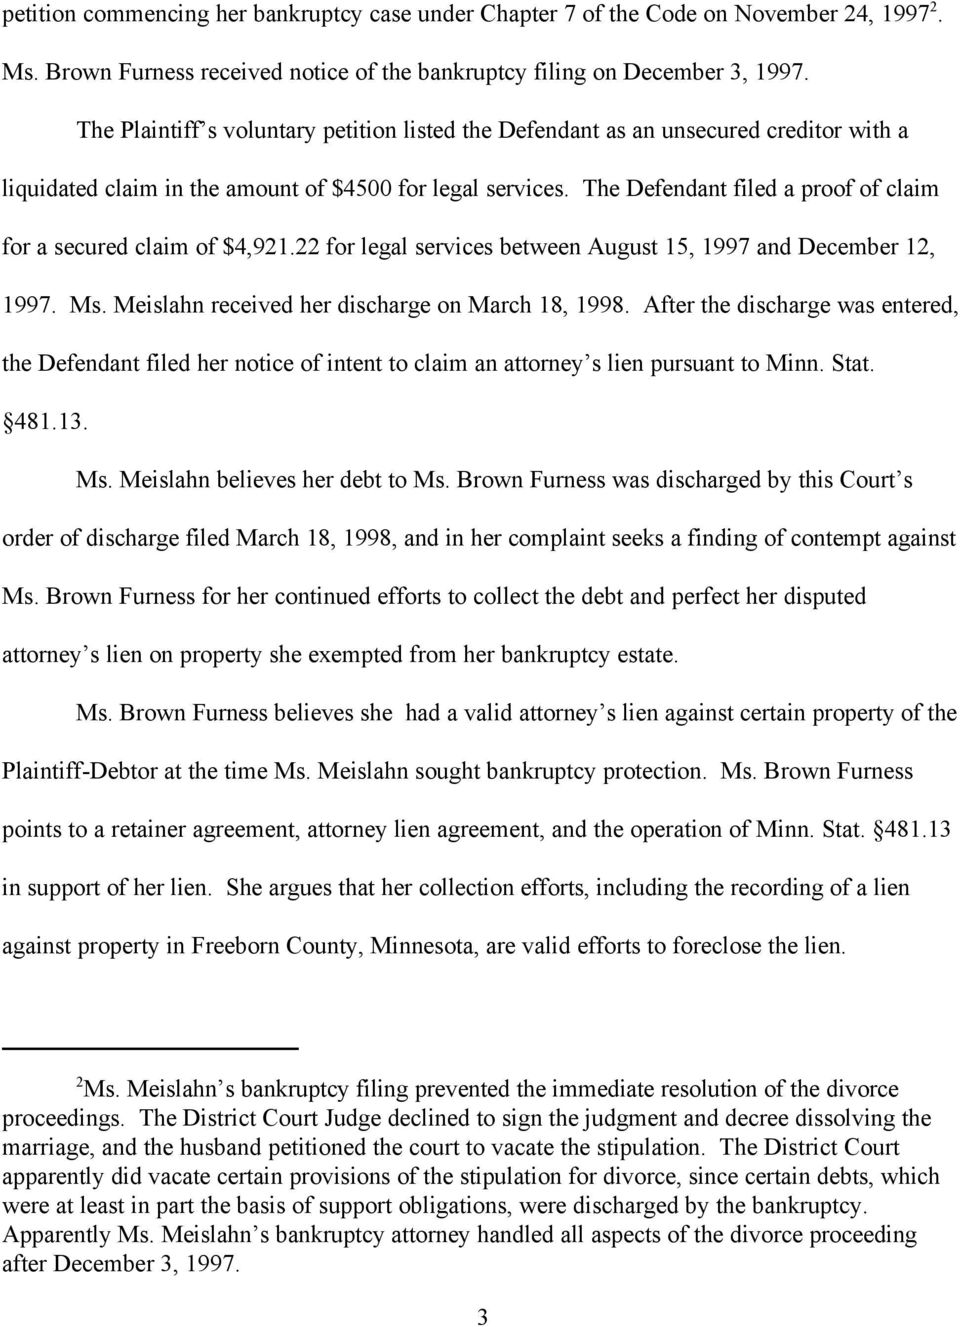 The Defendant filed a proof of claim for a secured claim of $4,921.22 for legal services between August 15, 1997 and December 12, 1997. Ms. Meislahn received her discharge on March 18, 1998.